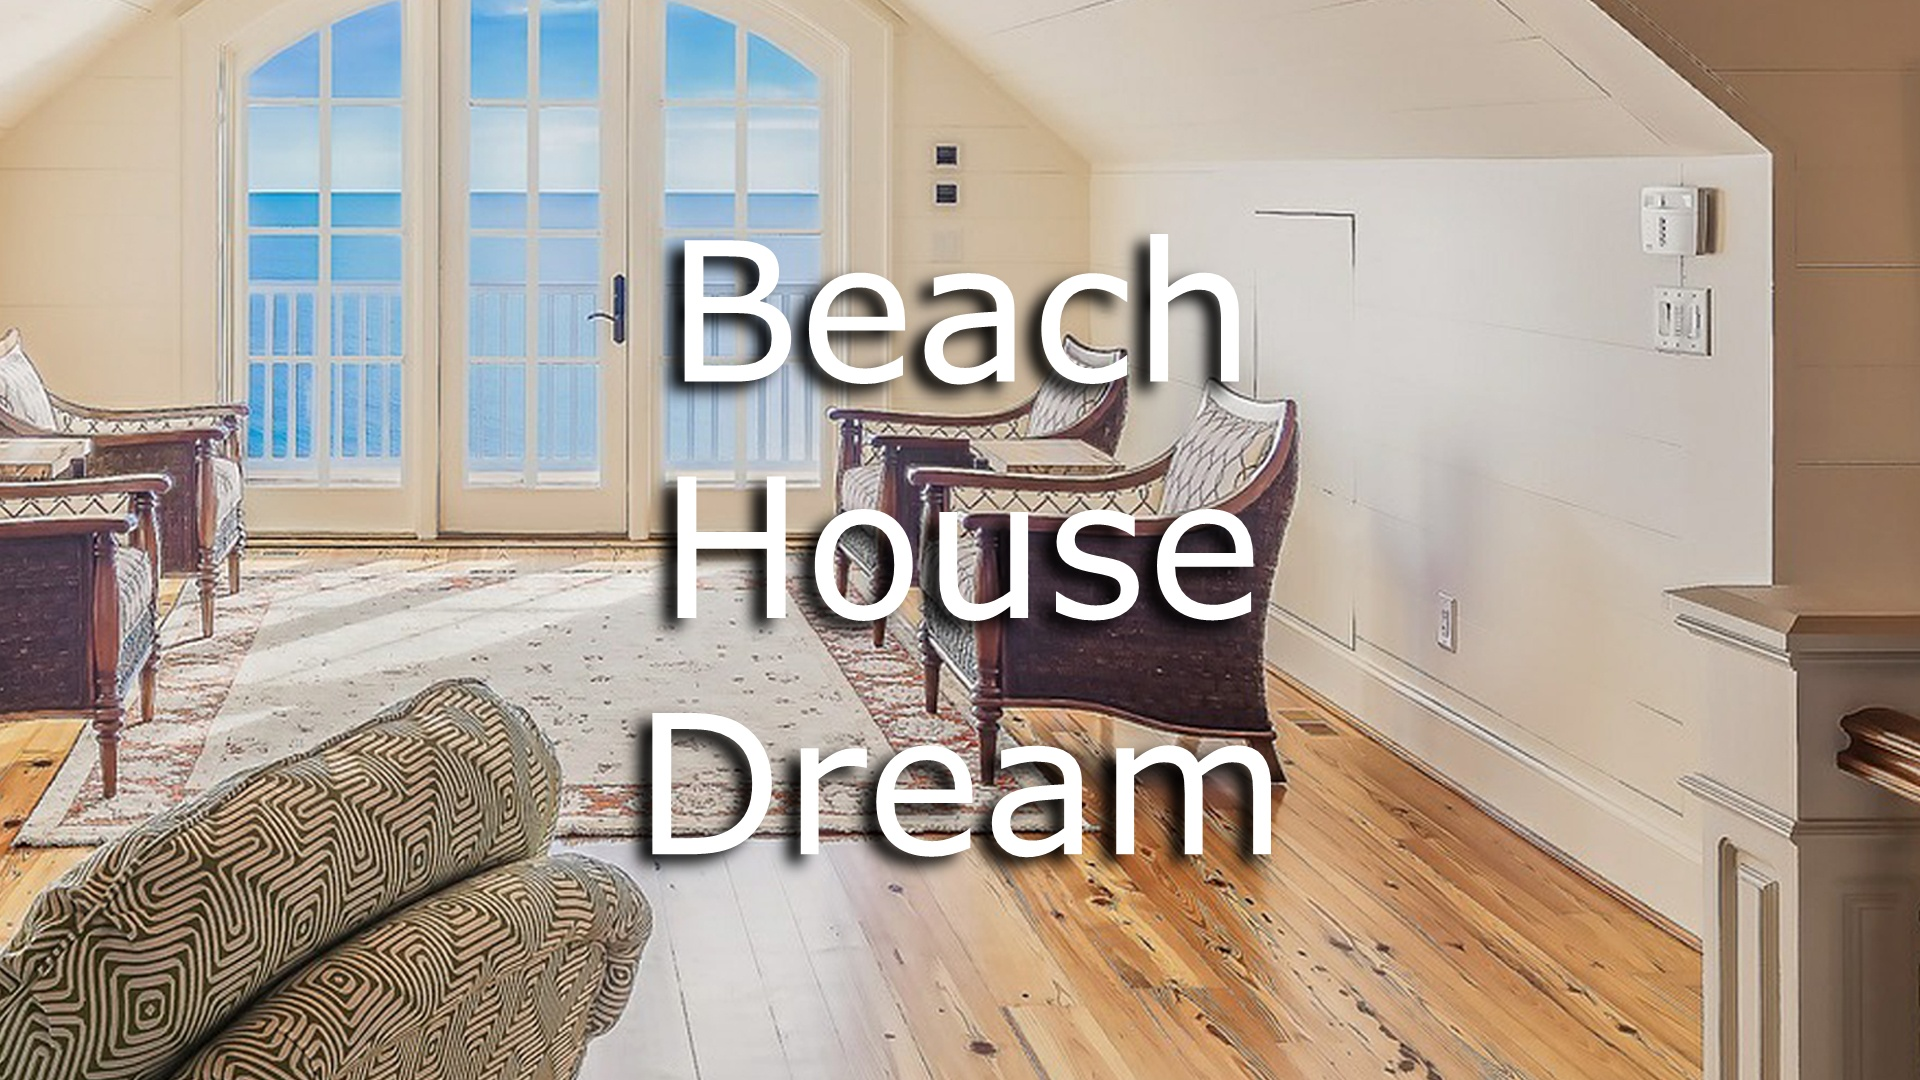 dream about a beach house meaning